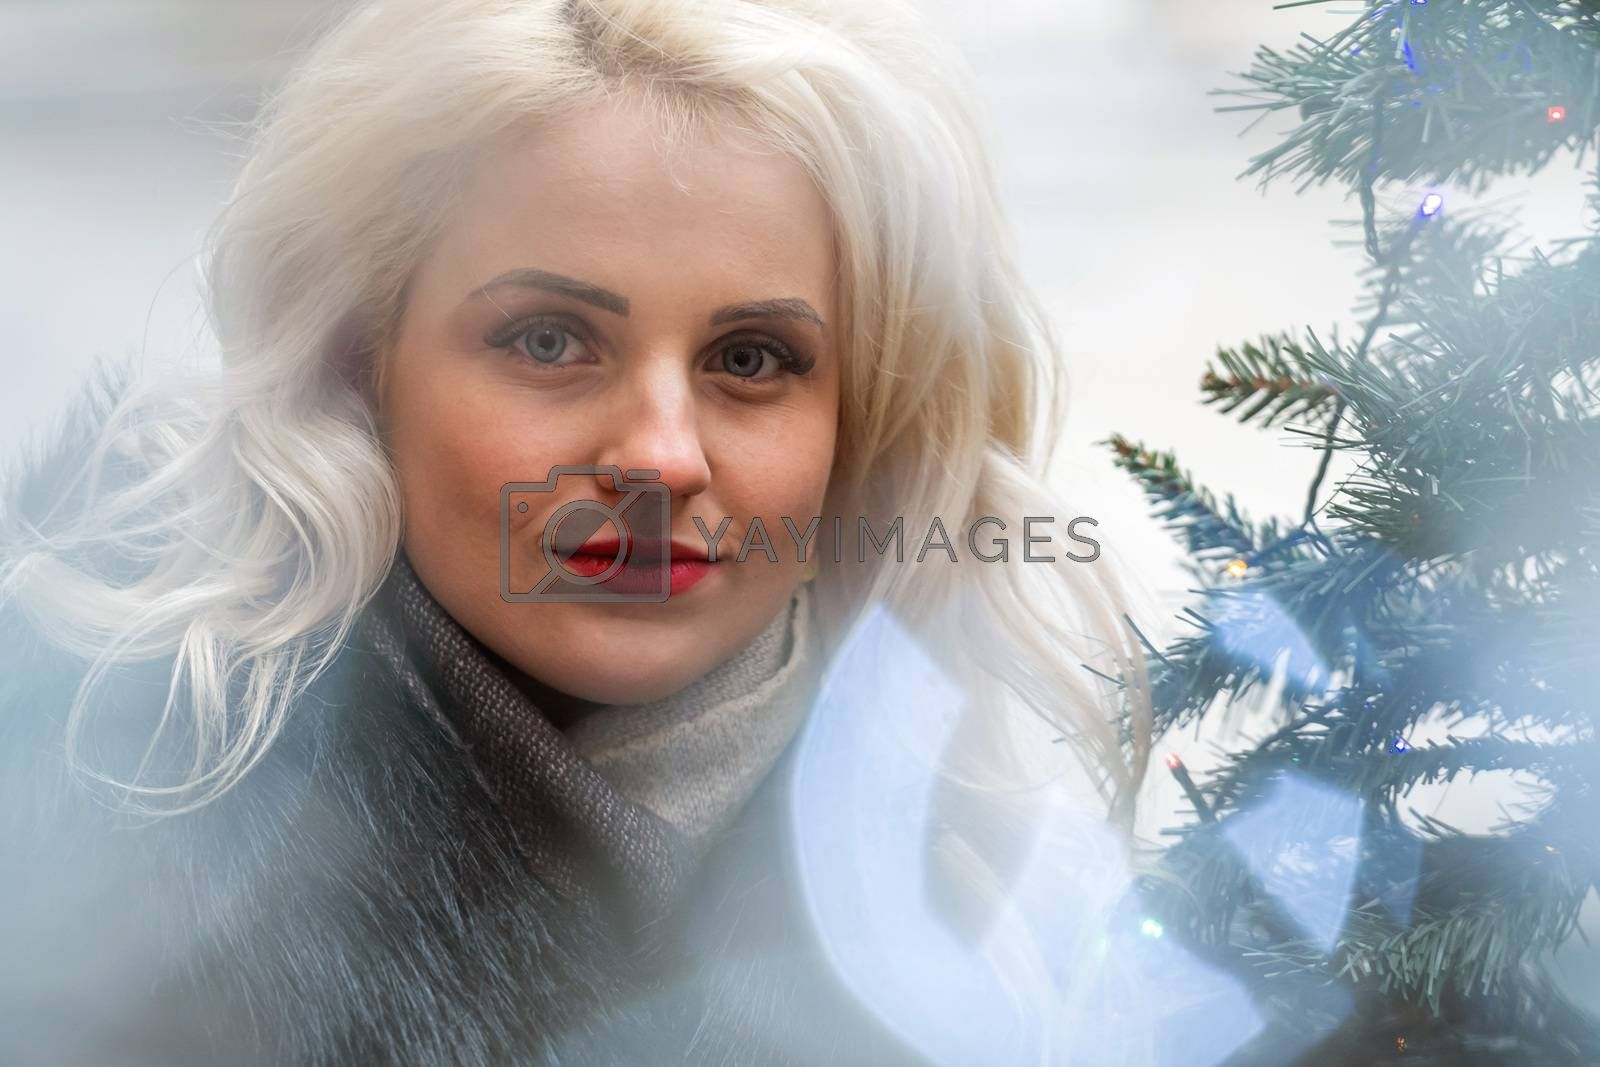 Portrait of a young smiling blonde woman photographed through the Christmas lights, soft focus - image